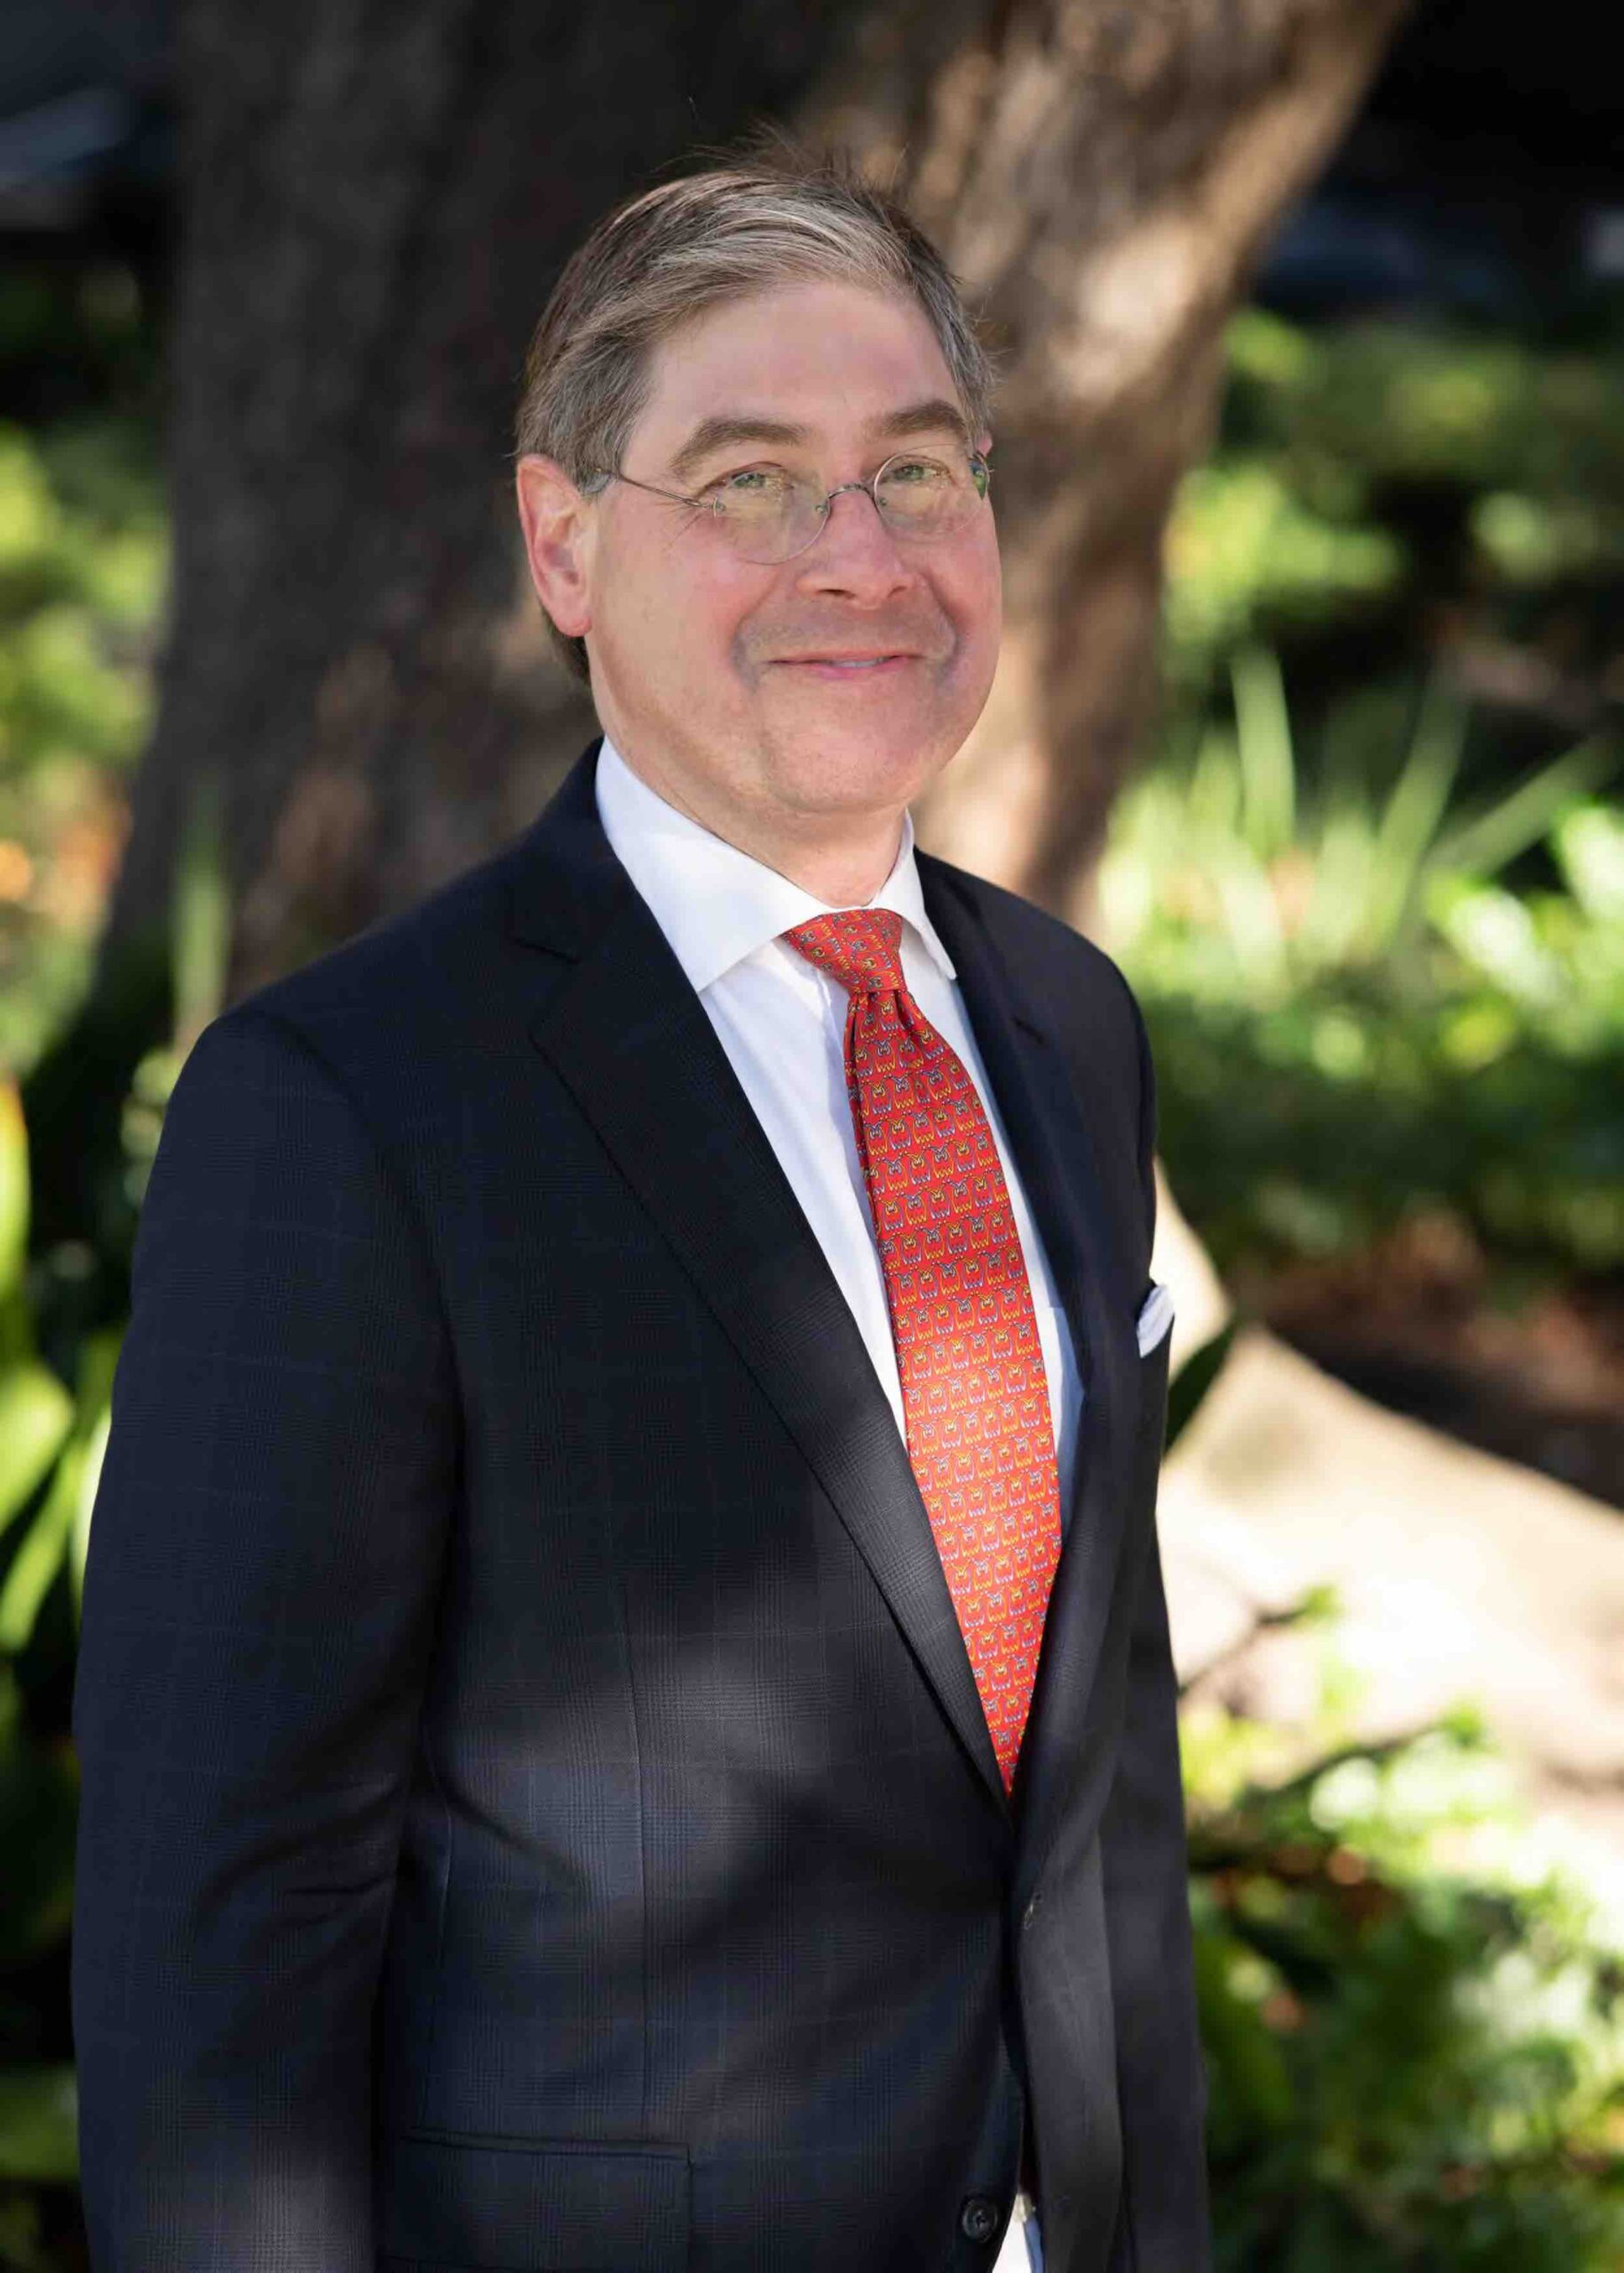 Clifford Favrot - Dumaine Investments LLC - Wealth Management, Financial Planning, Investment Advice, New Orleans